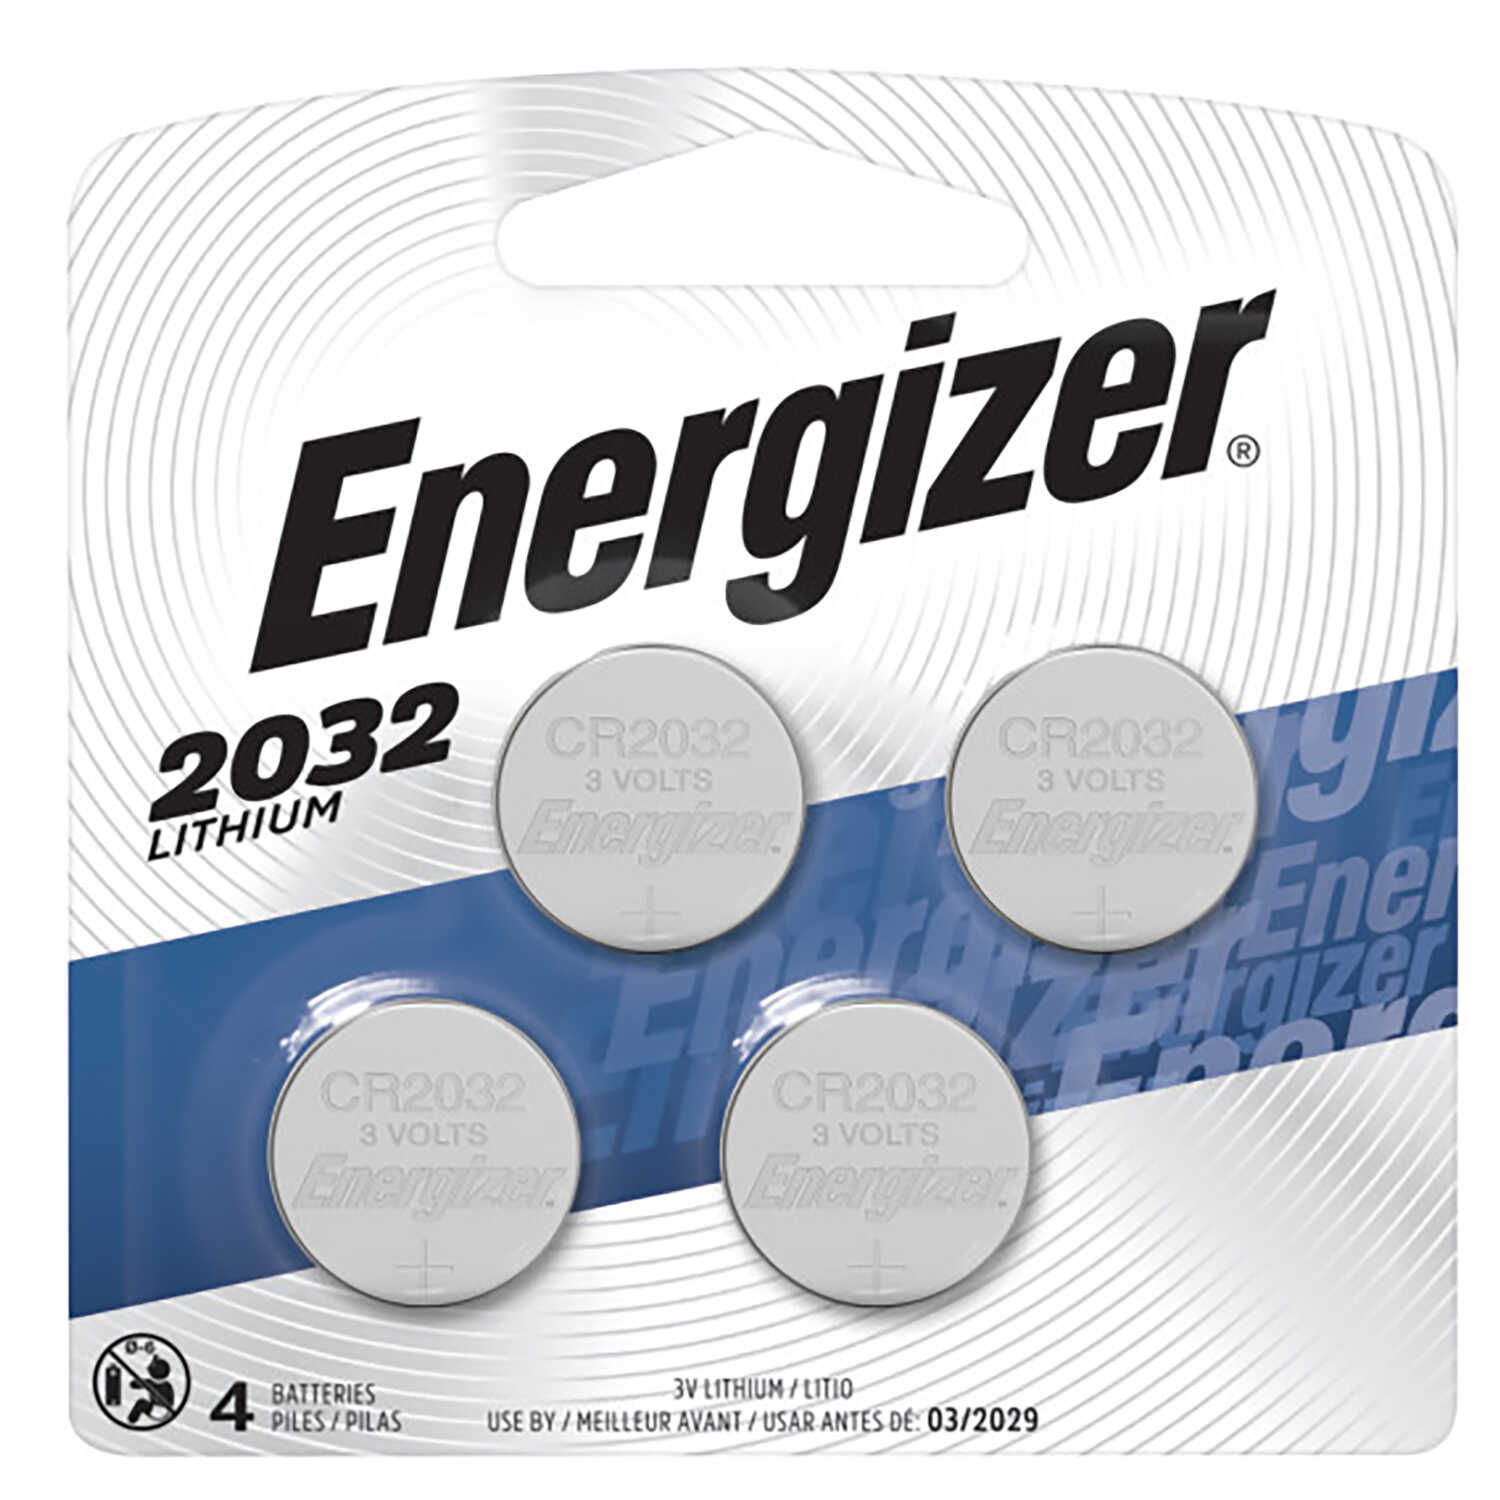 Energizer  Lithium  2032  3 volt Electronic/Watch Battery  4 pk